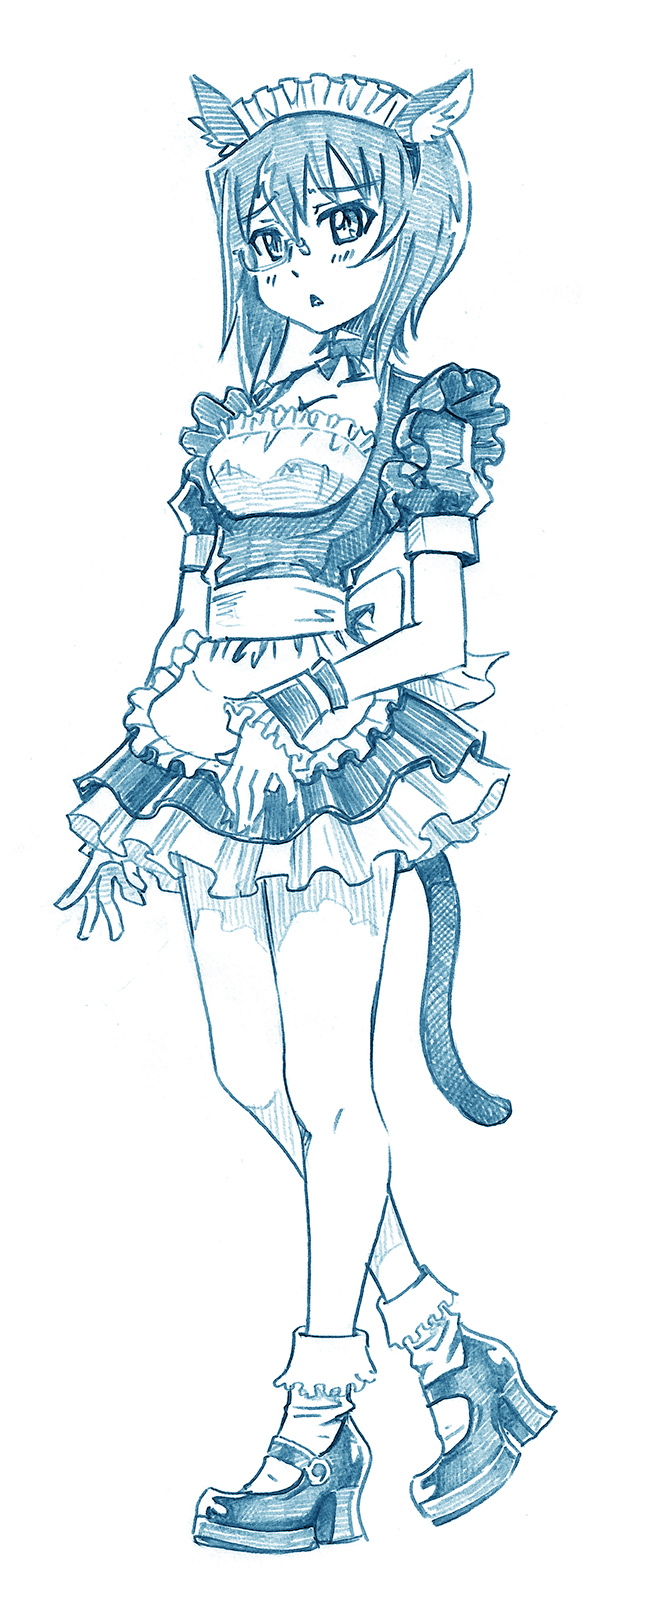 1girl alternate_costume animal_ears apron bangs bbb_(friskuser) blue_theme bobby_socks cat_ears cat_tail choker commentary dress enmaided eyebrows_visible_through_hair fake_animal_ears fake_tail frilled_apron frilled_dress frilled_wrist_cuffs frills frown girls_und_panzer high_heels highres kawashima_momo light_blush looking_at_viewer maid maid_headdress mary_janes monochrome monocle parted_lips puffy_short_sleeves puffy_sleeves ribbon_choker semi-rimless_eyewear shoes short_dress short_hair short_sleeves socks solo standing tail under-rim_eyewear waist_apron wrist_cuffs